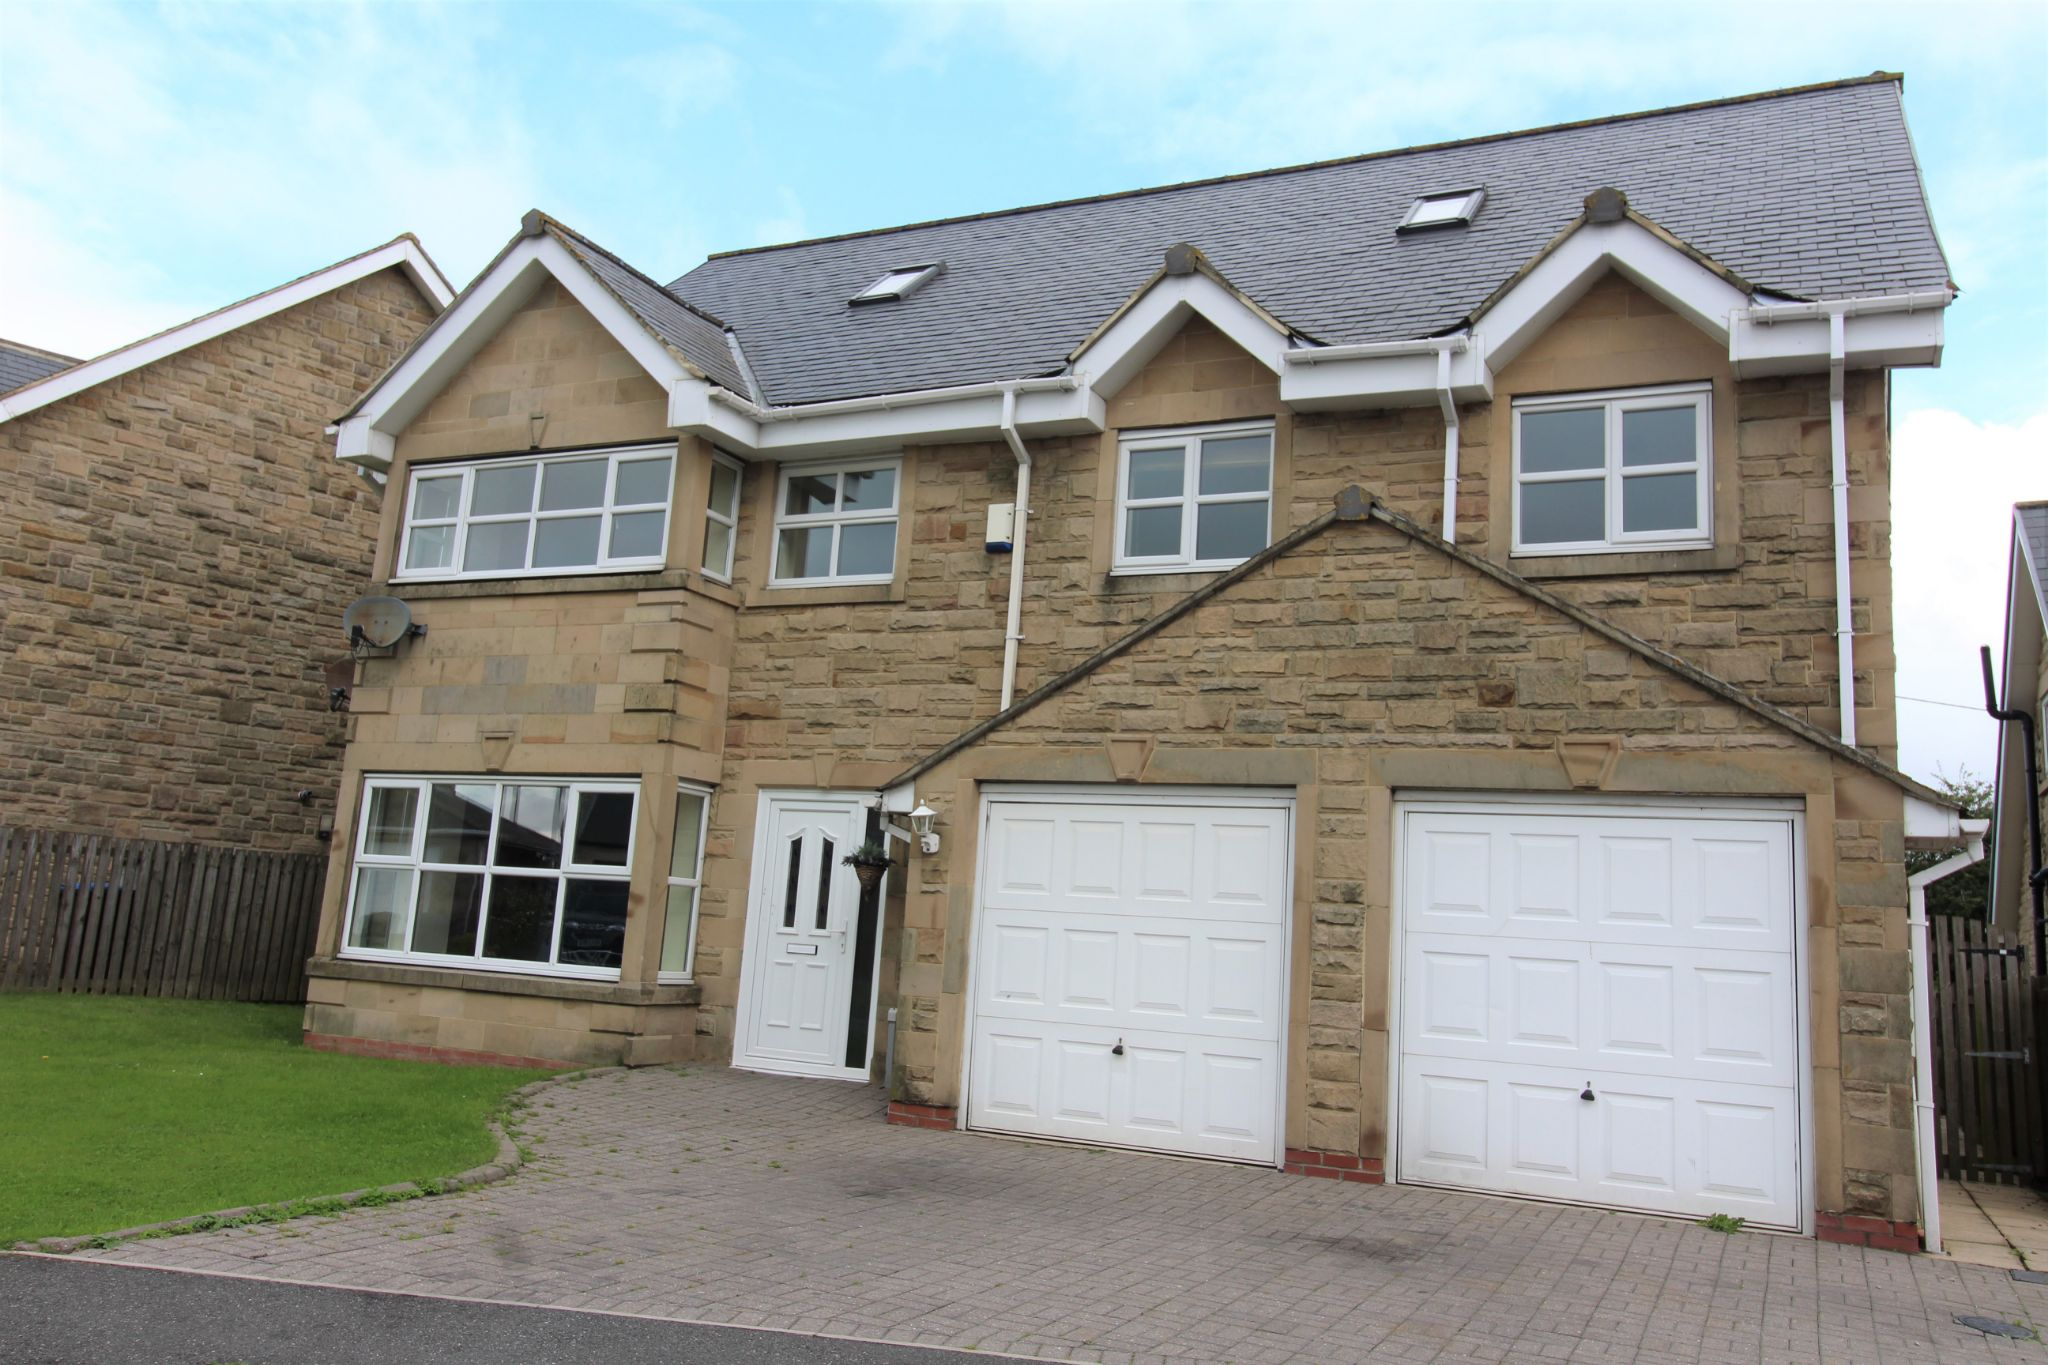 7 bedroom detached house Sale Agreed in Sunniside - Photograph 2.